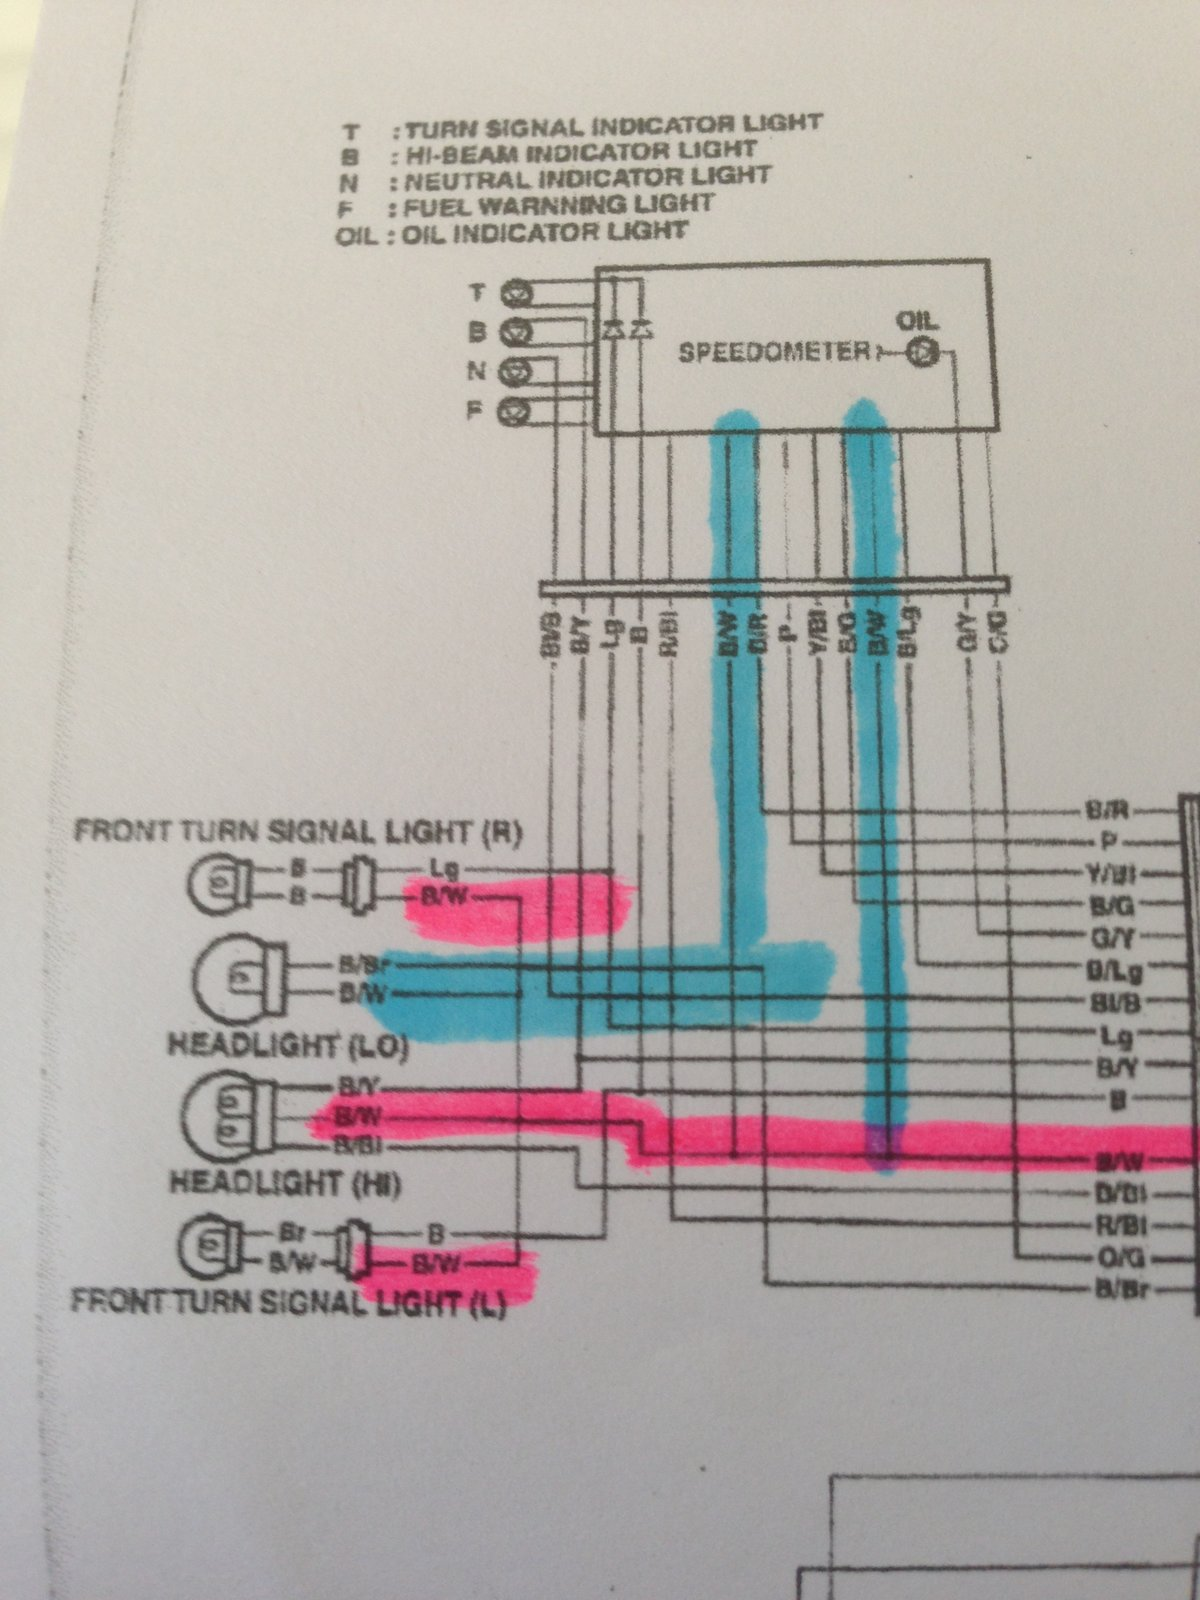 2003 suzuki gsxr 600 wiring diagram the wiring vz800 wiring diagram 2006 auto base